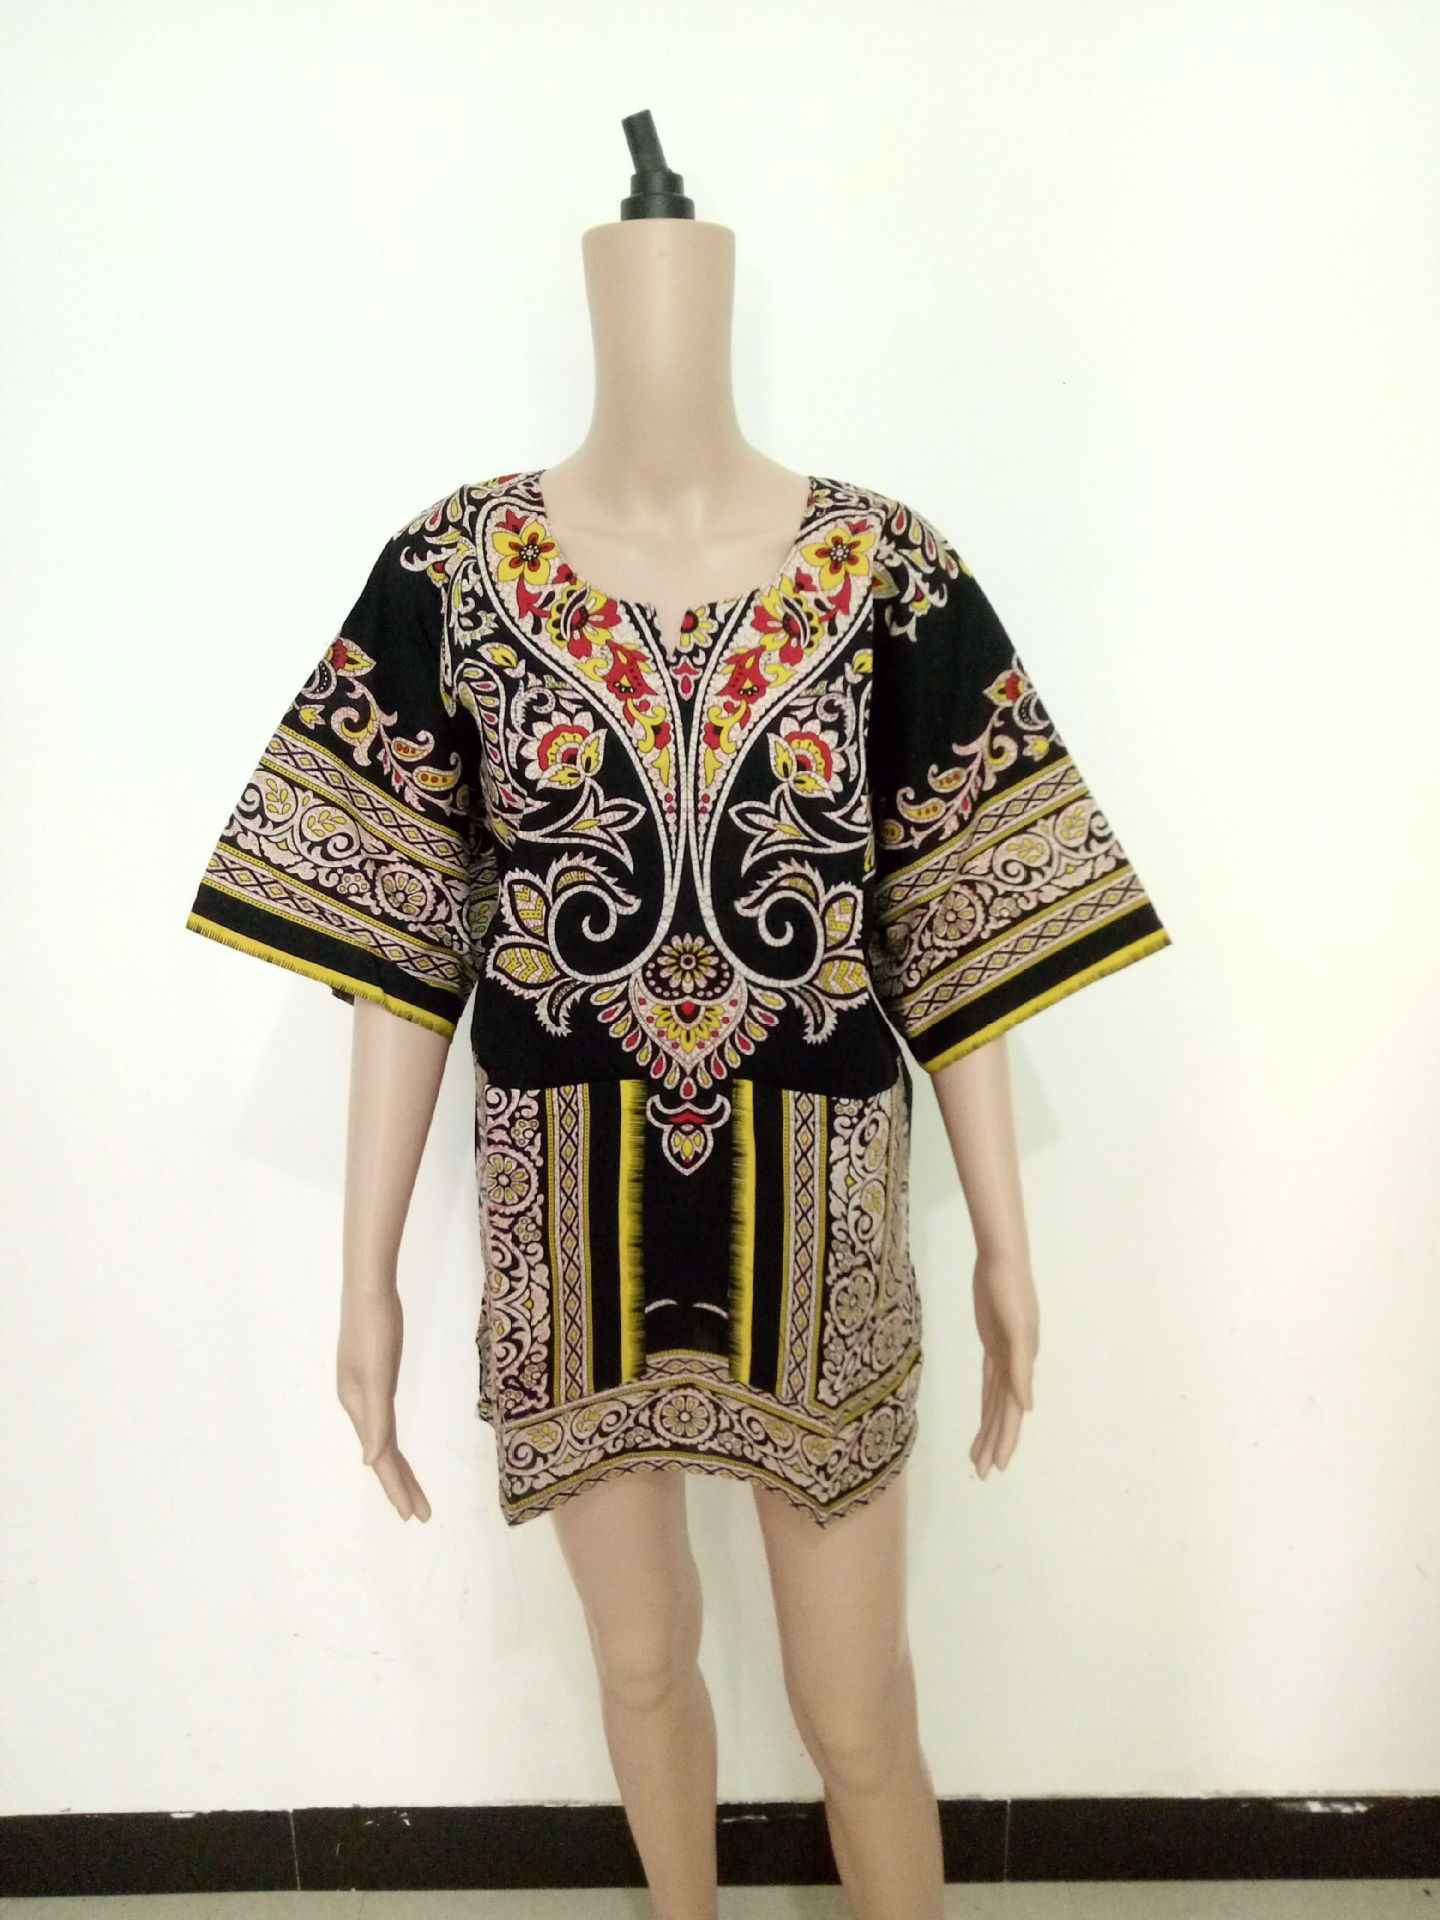 Traditional african clothing for women Africa ladies dress Bazin Riche African  dress African Dashikis women s dresses 804fa4142092